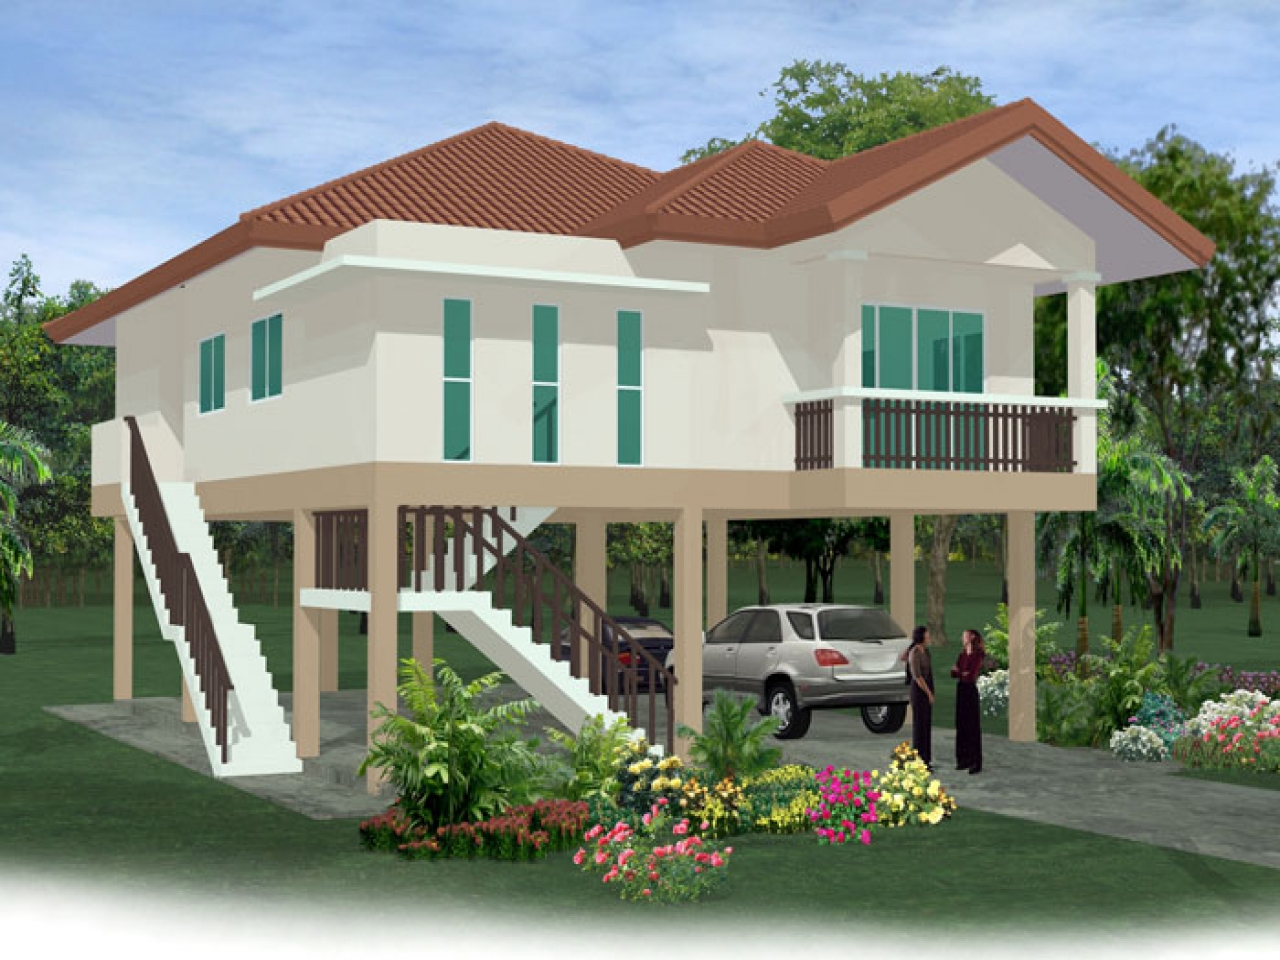 House On Stilts Floor Plans Homes On Stilts House Plans ...